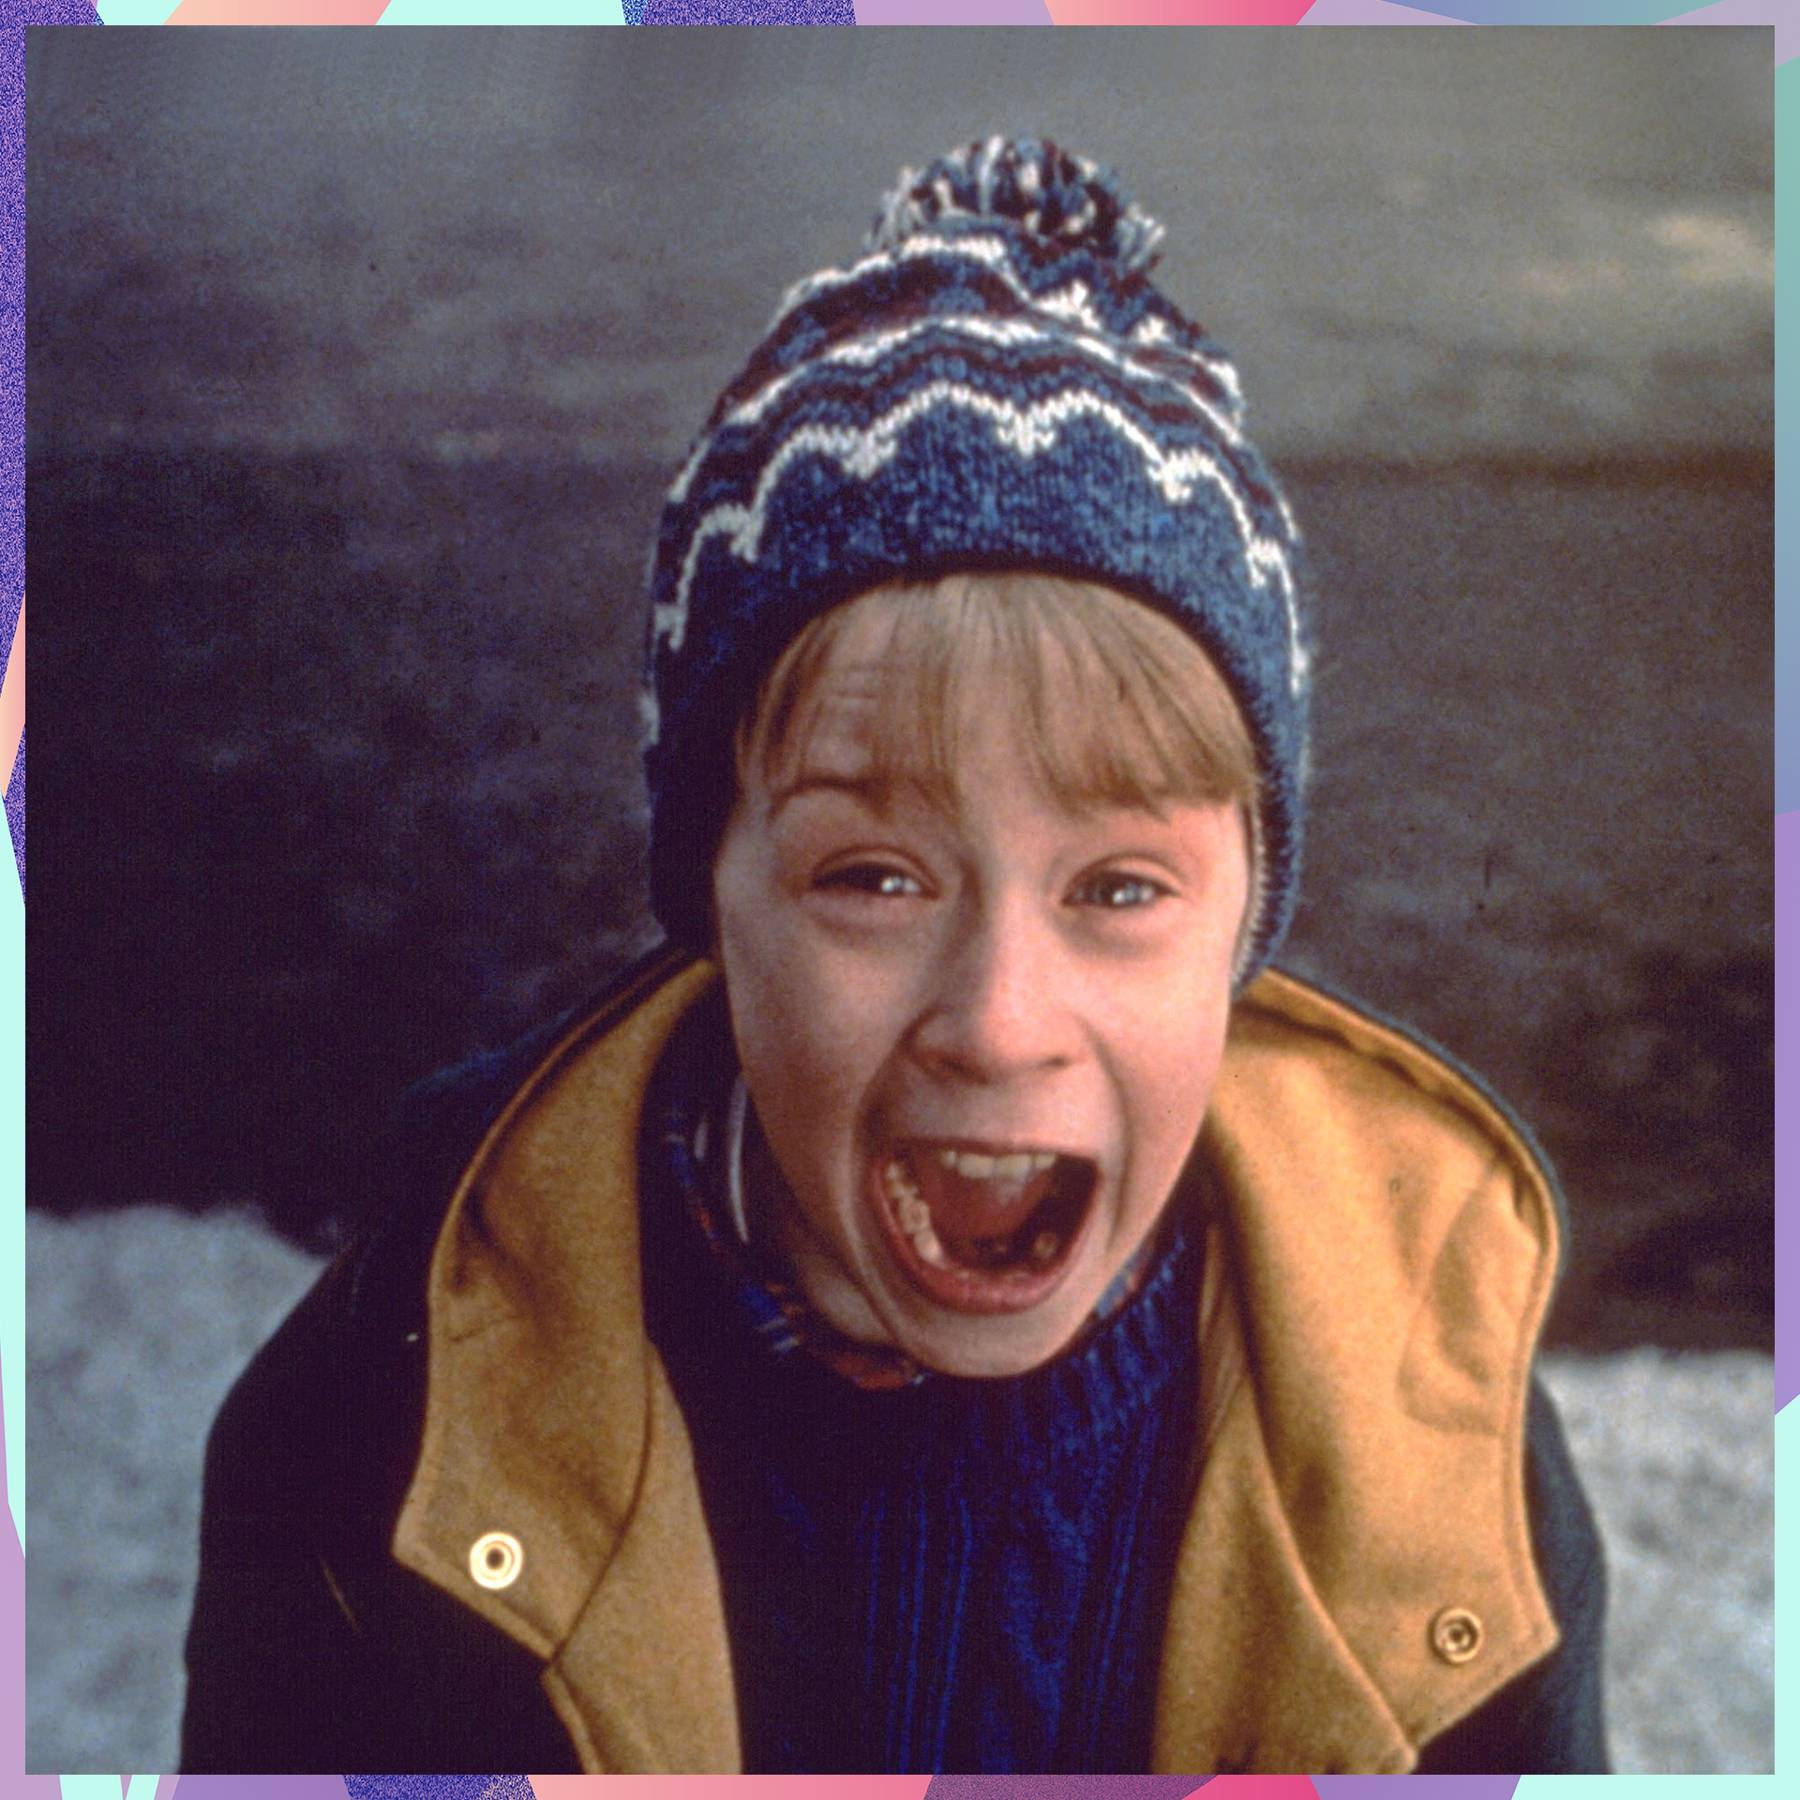 Disney is re-making Home Alone and people aren't happy